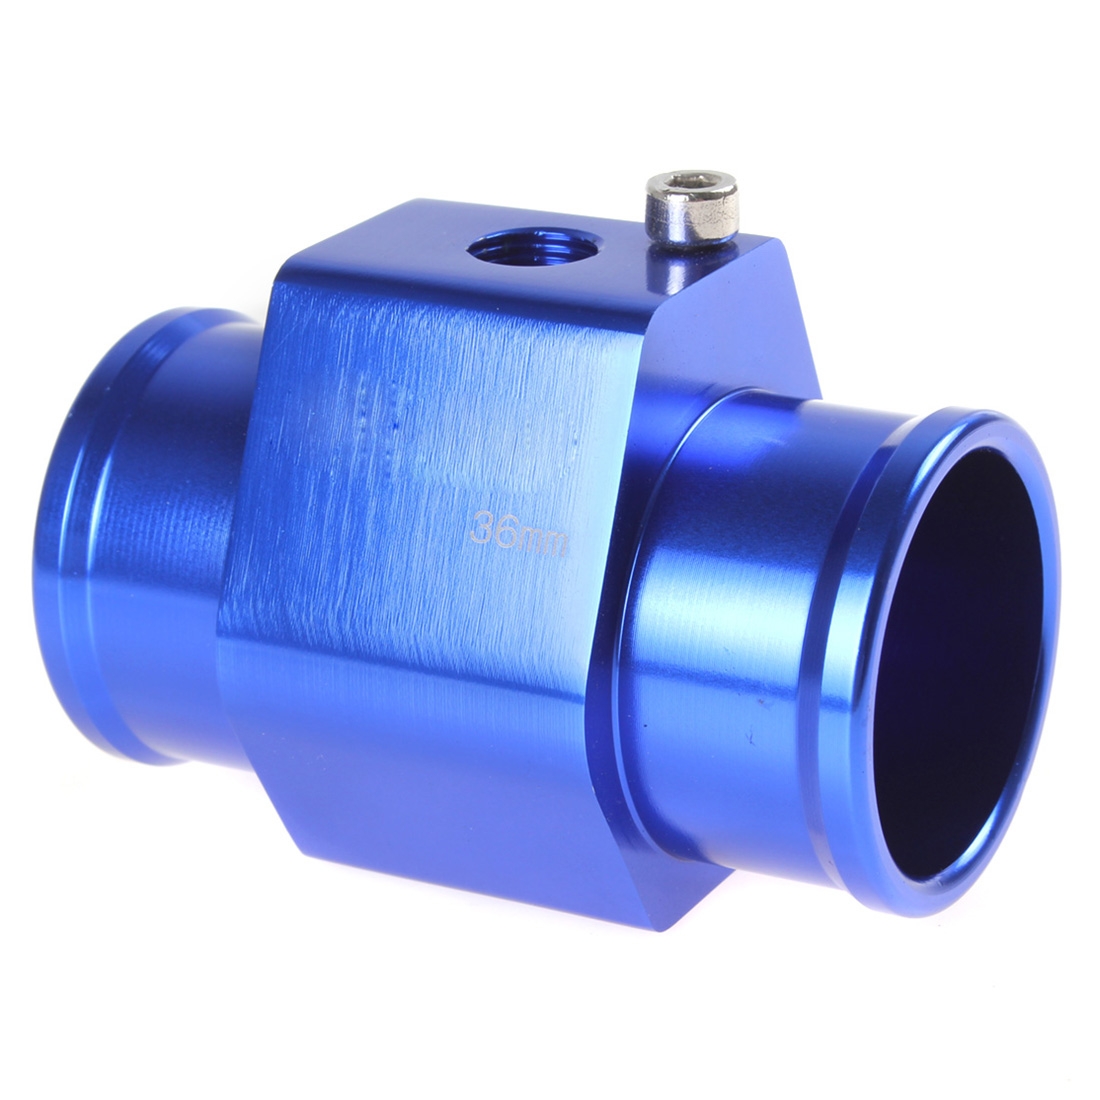 Automobile motorcycle replacement parts Water Temperature Temp Sensor Guage Adapter 36mm Aluminium with Clamps wholesale